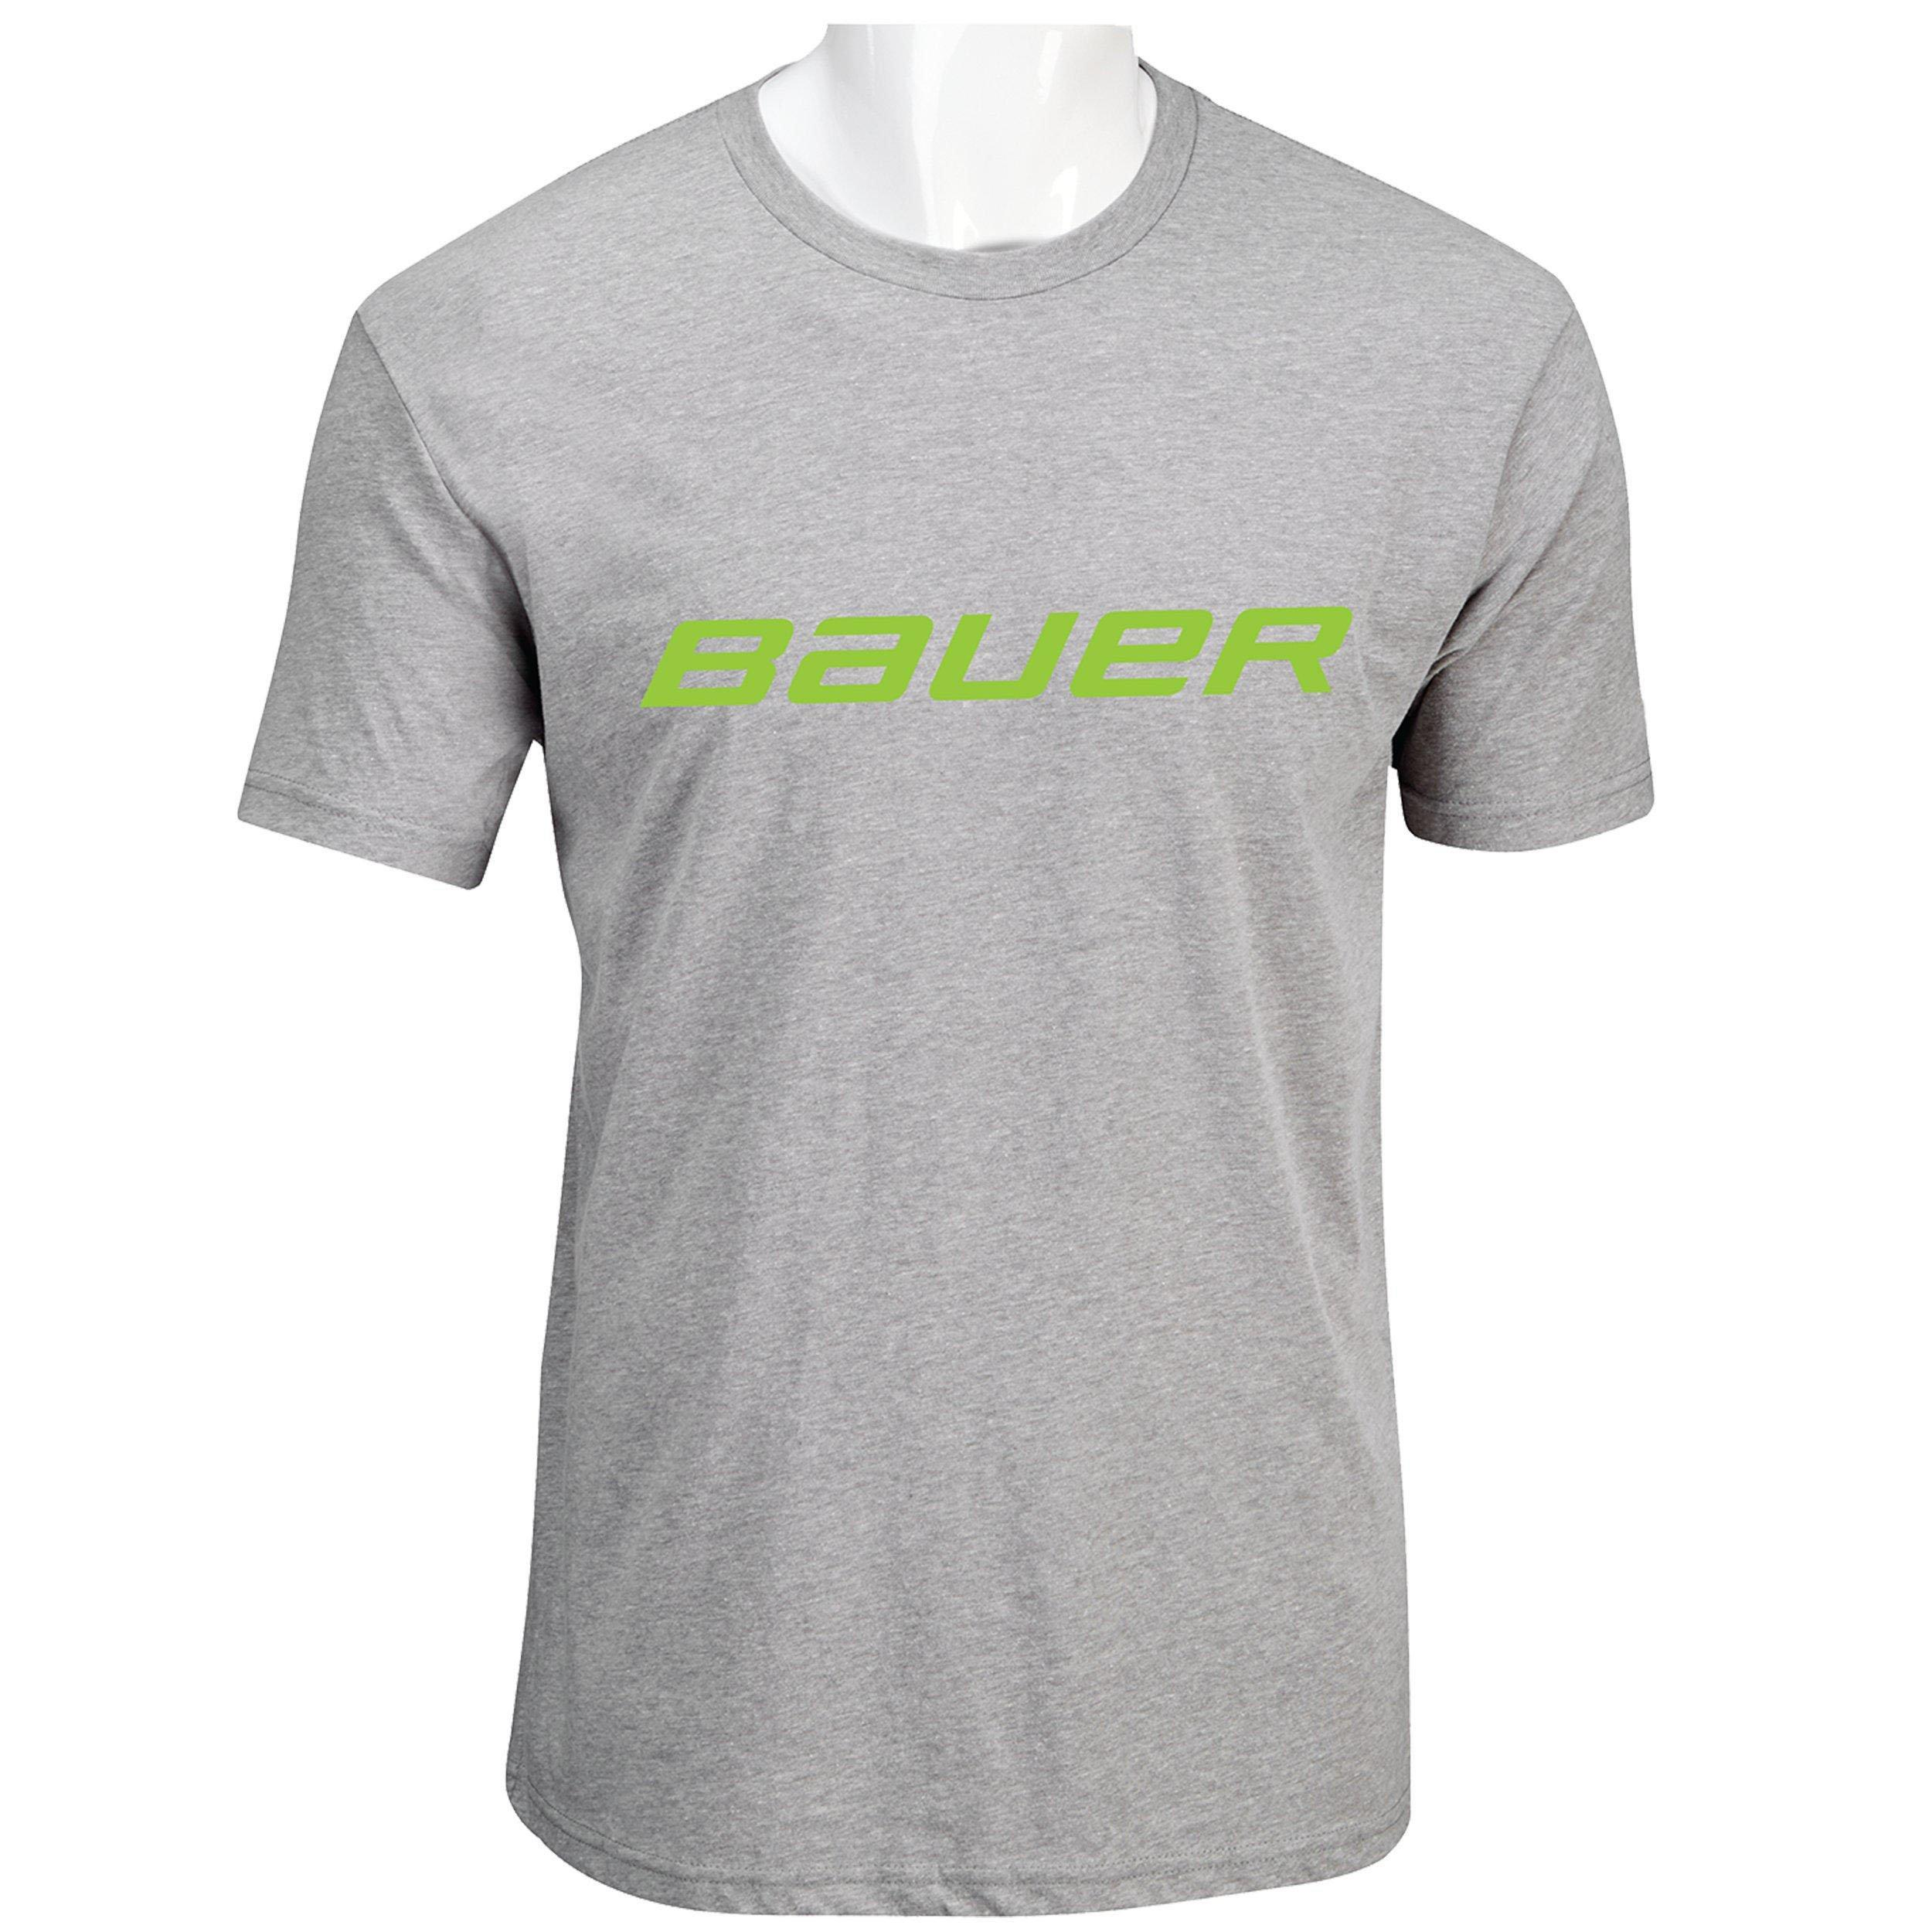 BAUER Core Short Sleeve Tee Color Pop Youth - Lime,,medium